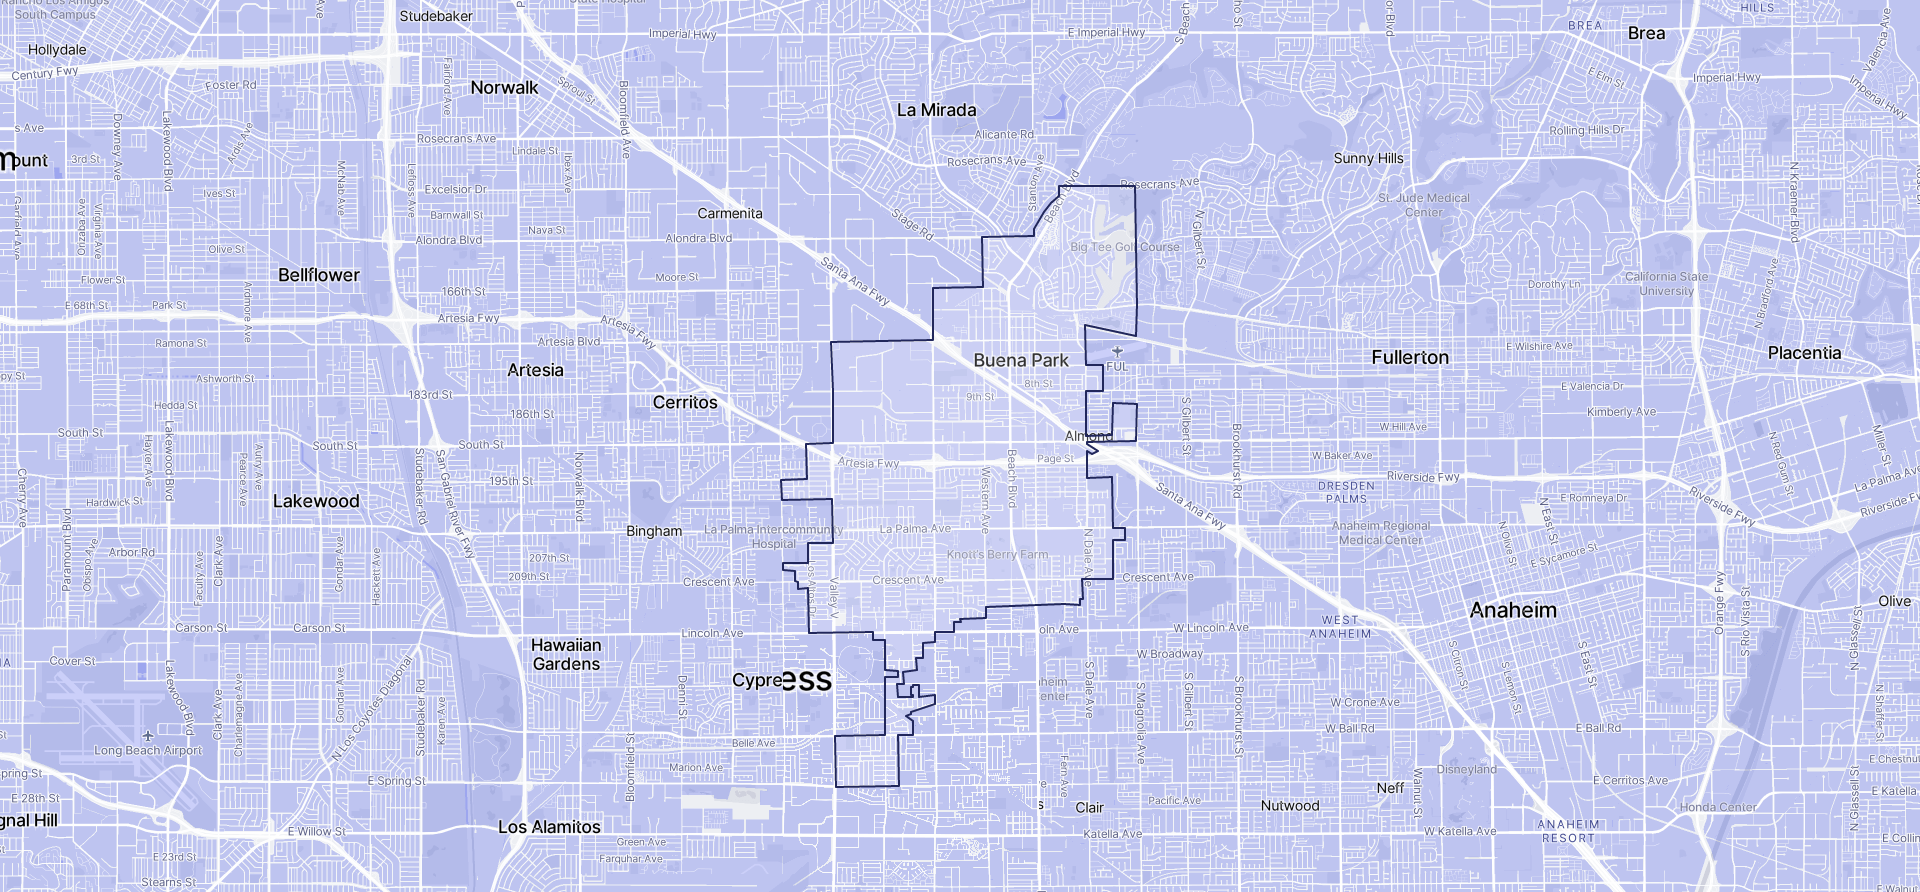 Image of Buena Park boundaries on a map.